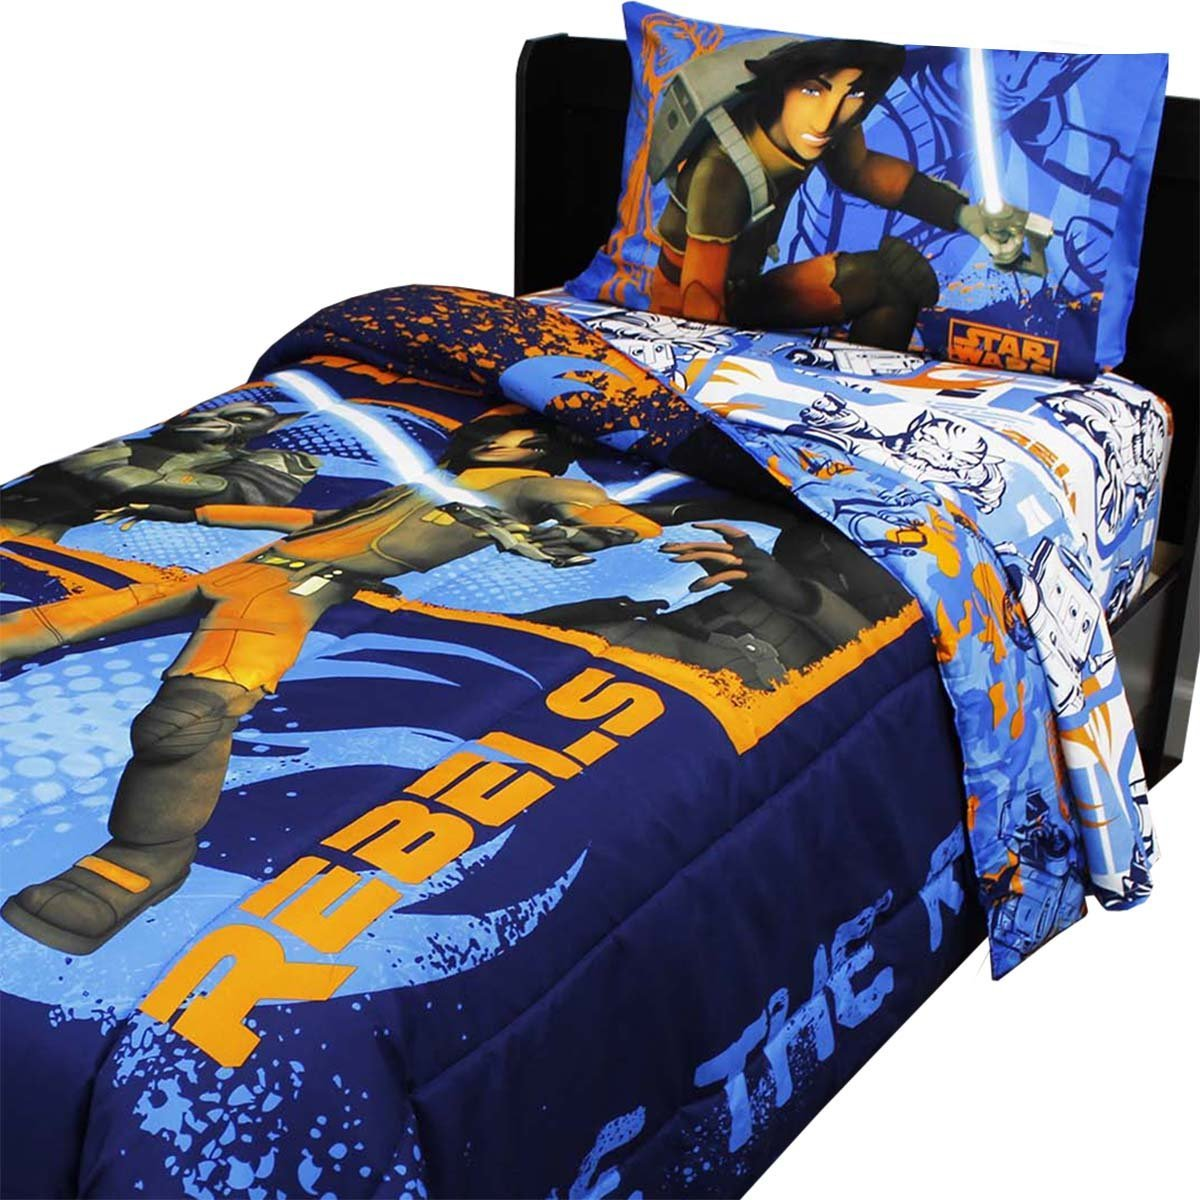 Star Wars Full Bedding Set Rebels Fight Comforter Sheets